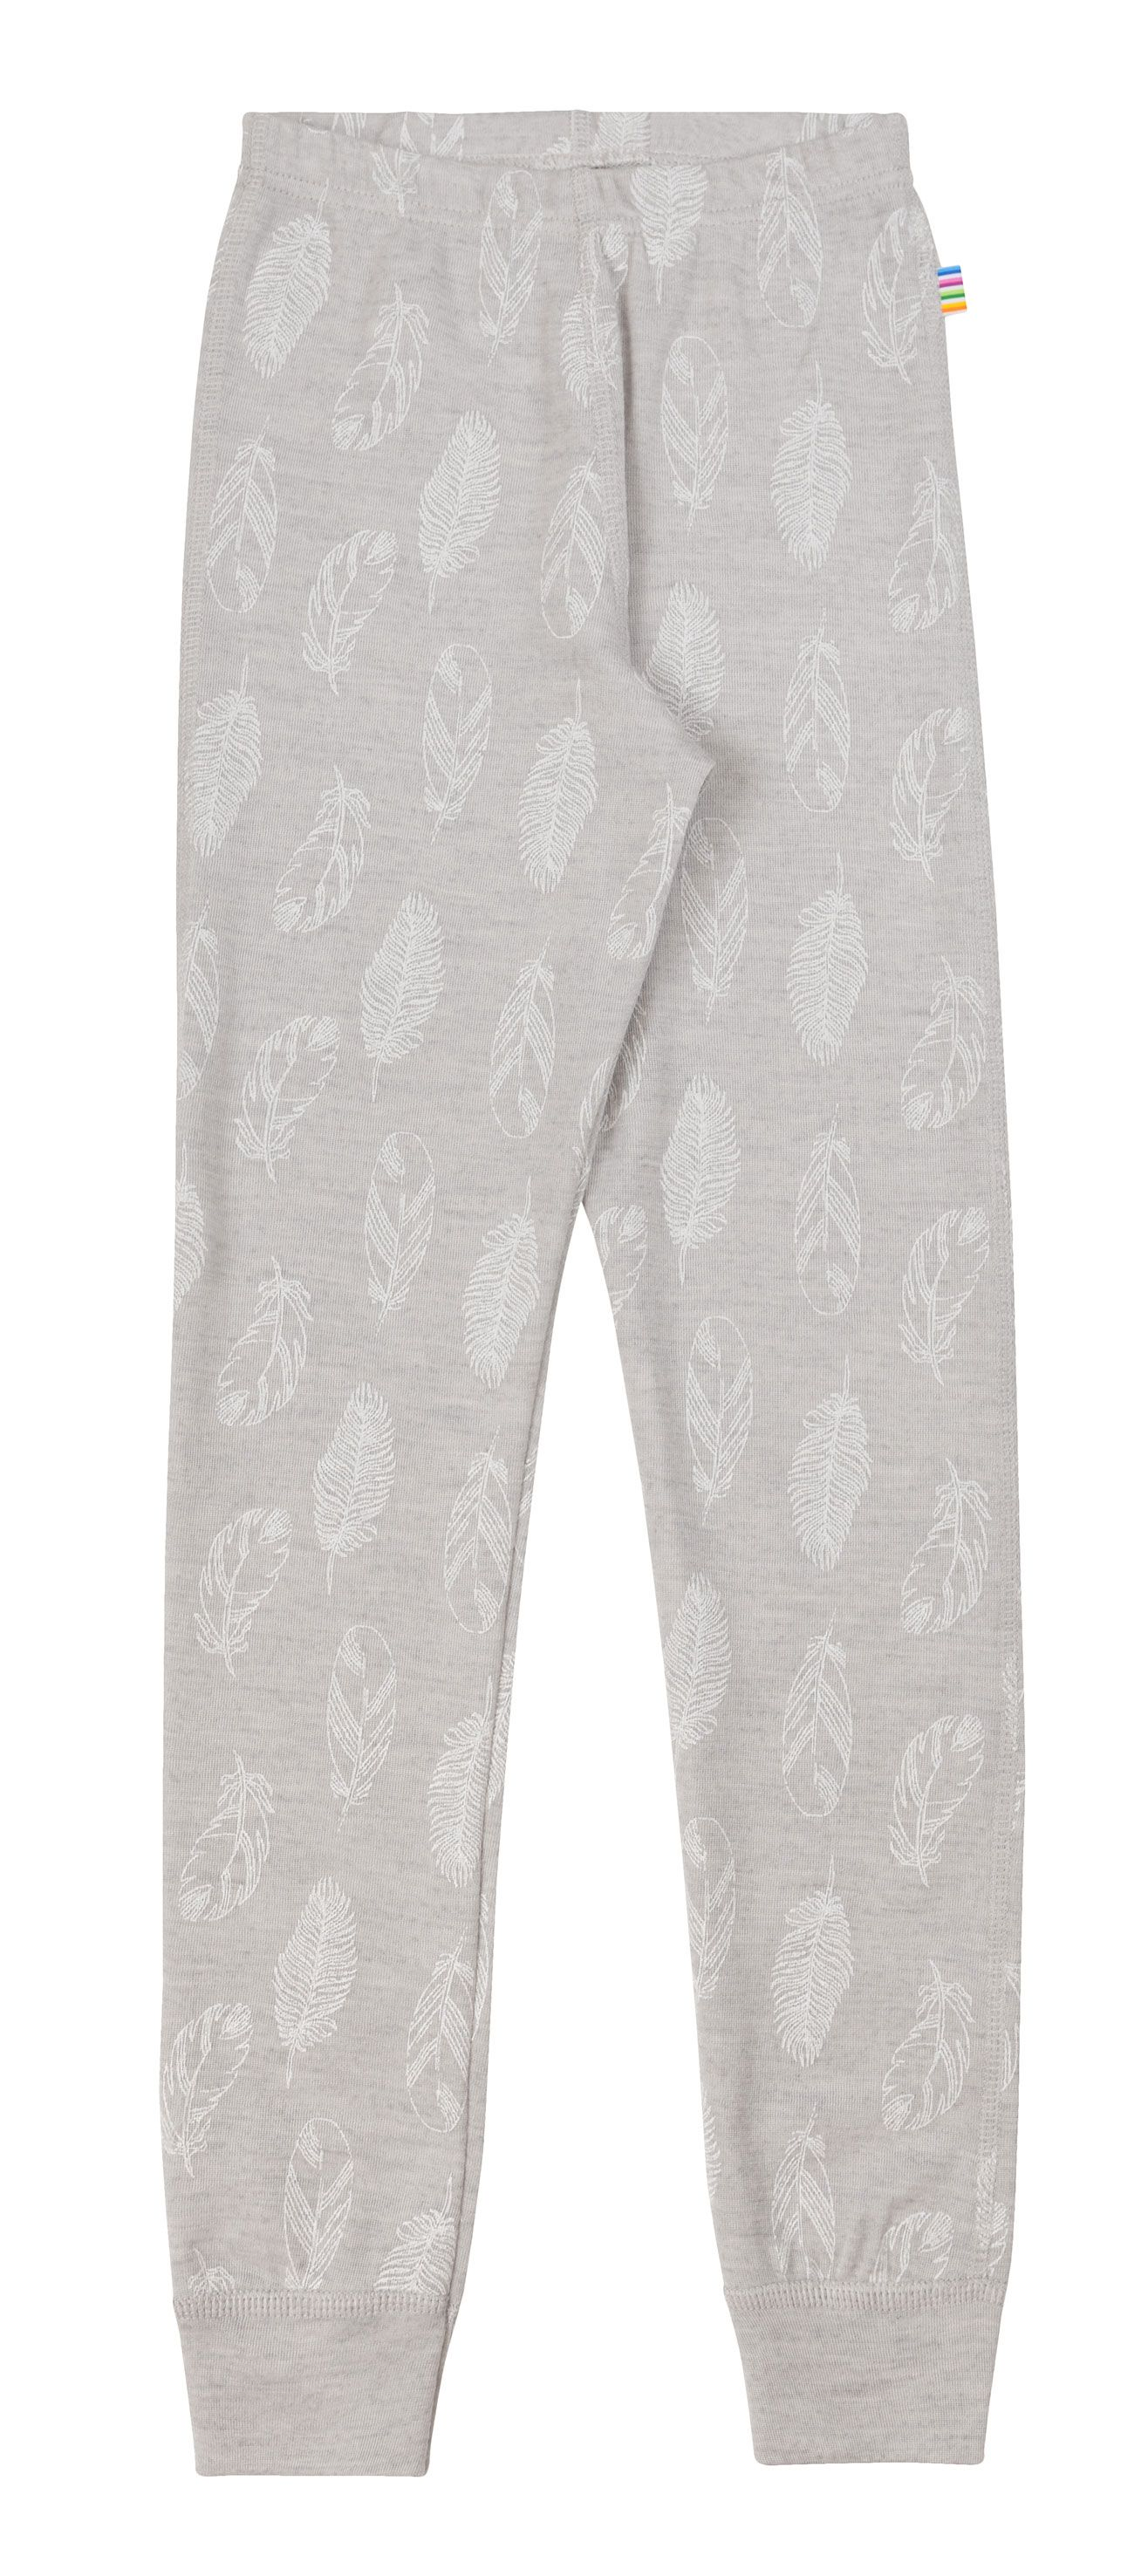 Image of   Leggings fra Joha i uld-silke m. Grey Feathers